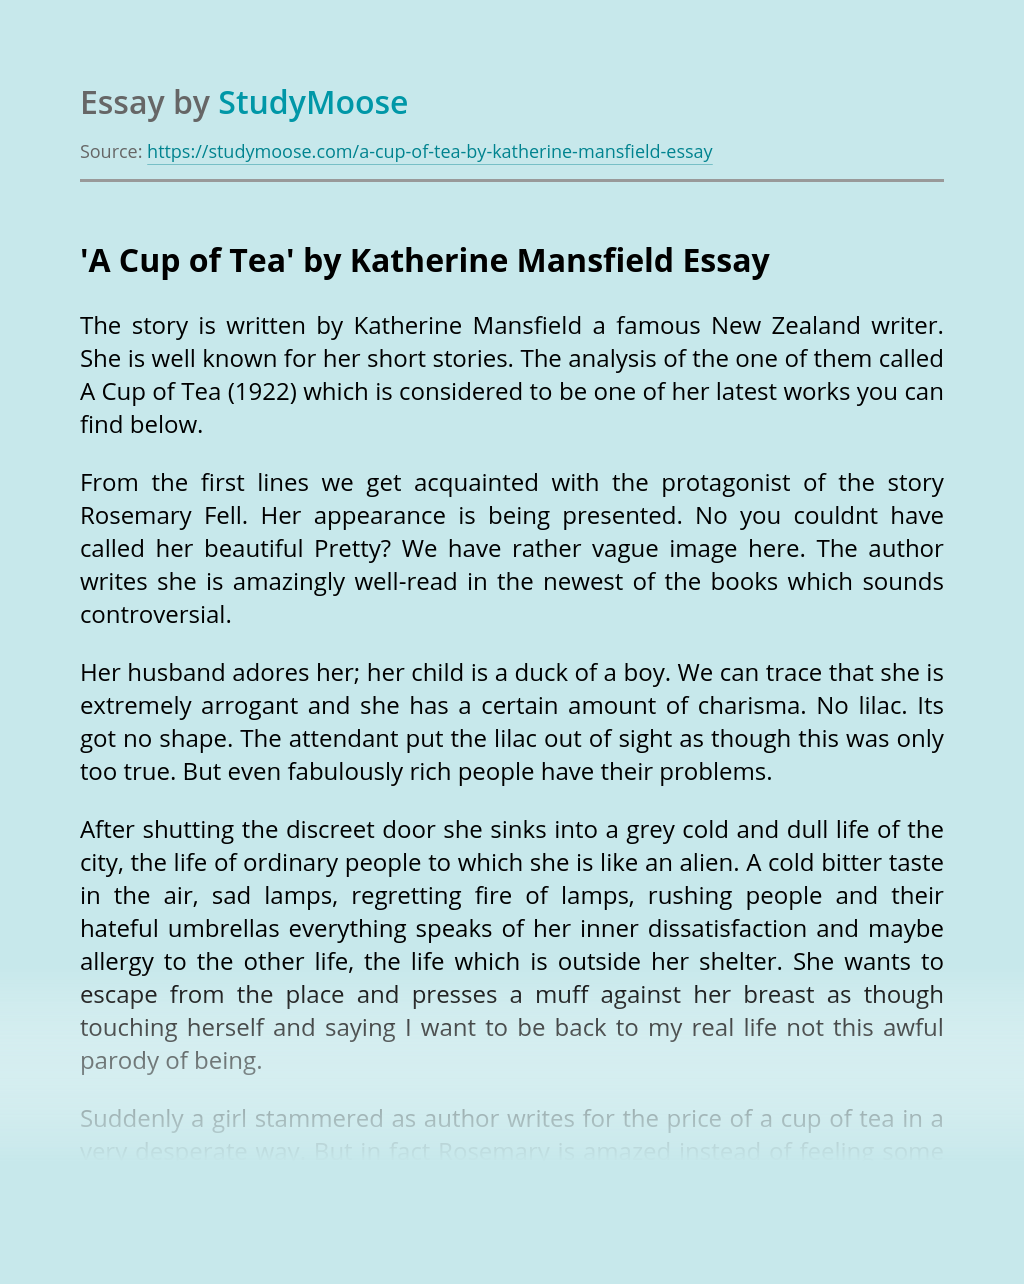 'A Cup of Tea' by Katherine Mansfield